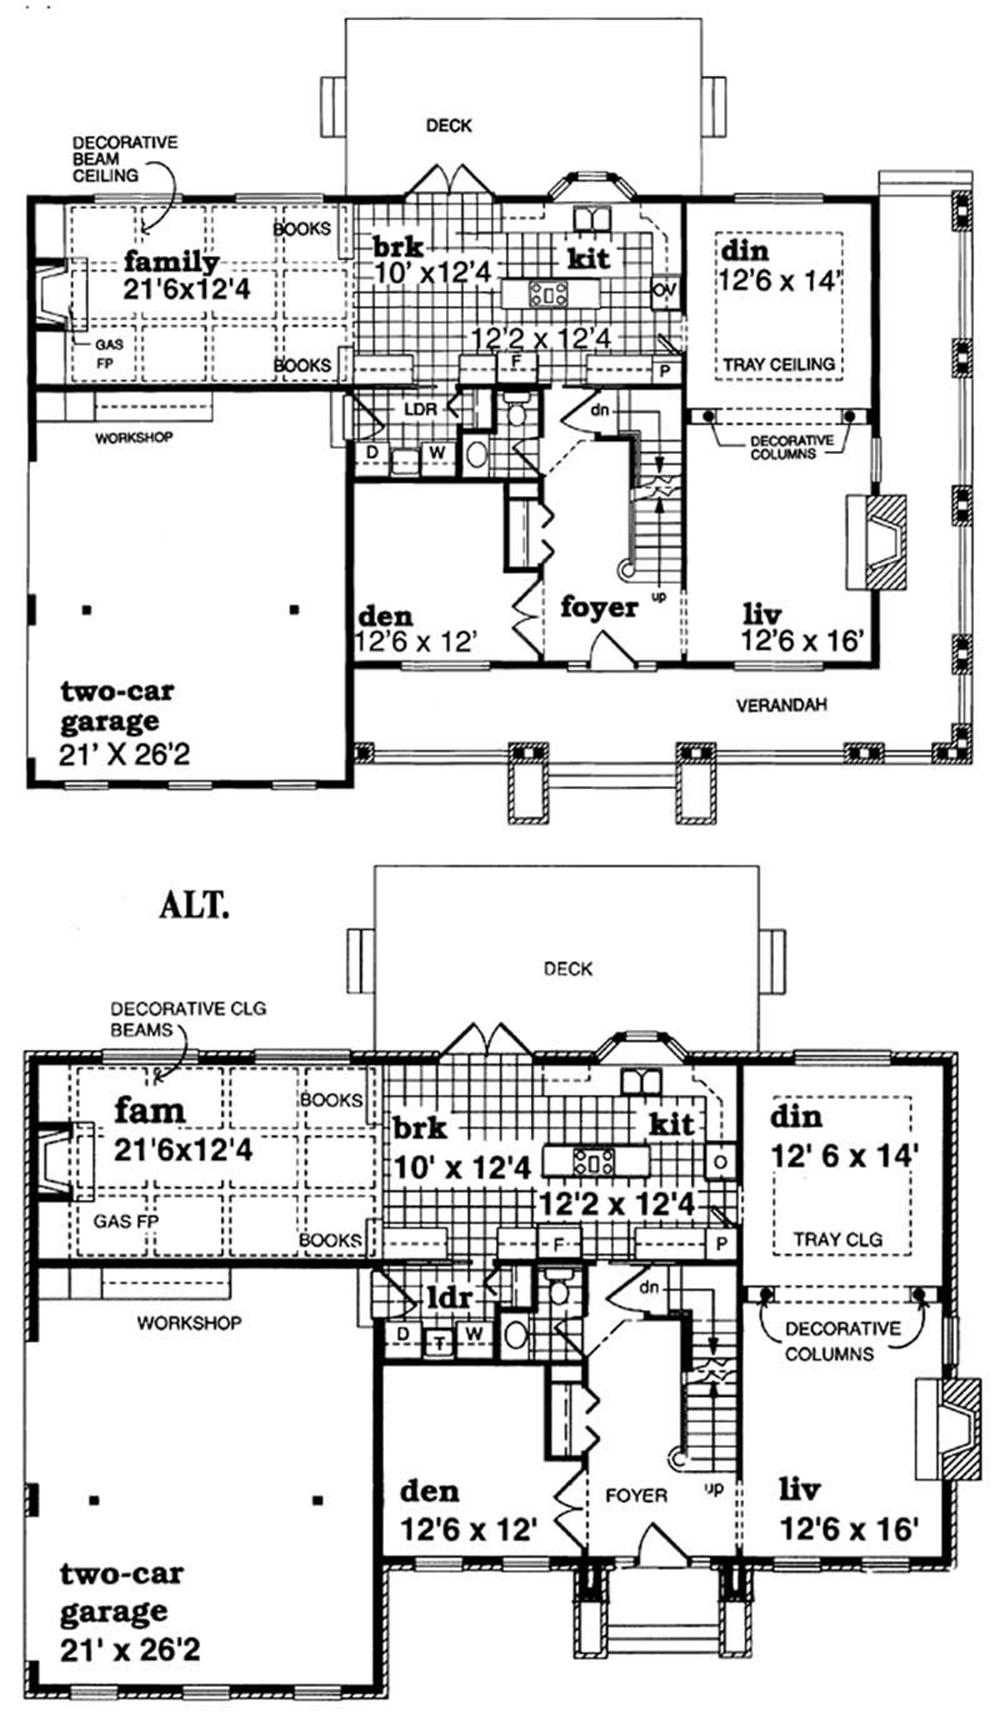 Large Images For House Plan 167 1223